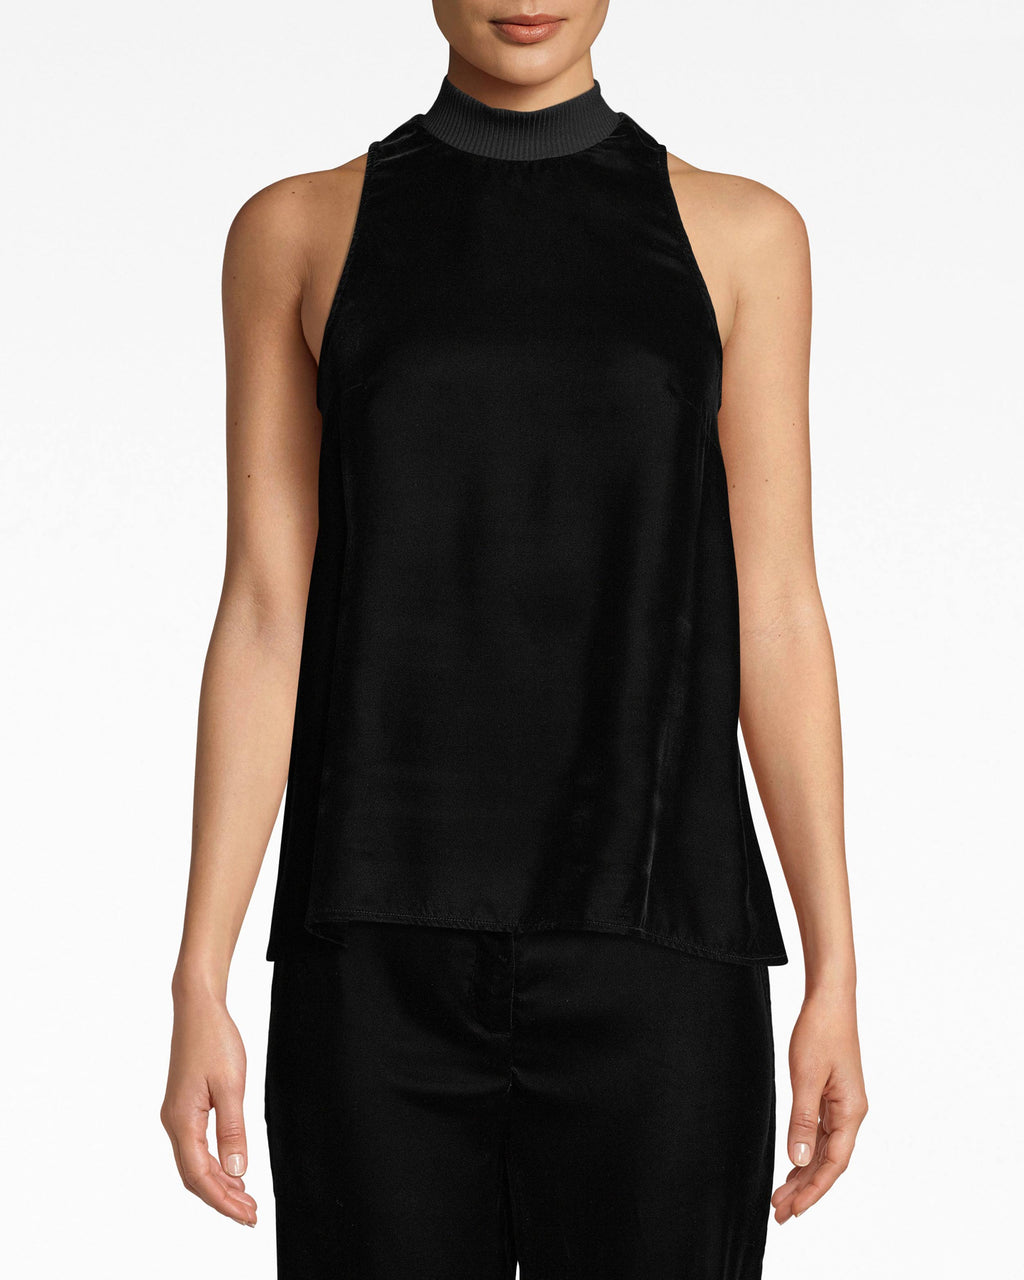 AQ10072 - LIGHTWEIGHT VELVET MOCK NECK TANK - tops - blouses - Versatility comes in velvet. This mock neck tank is easily pairable with skrts, denin, and jackets. The ribbed neck adds a fresh element.